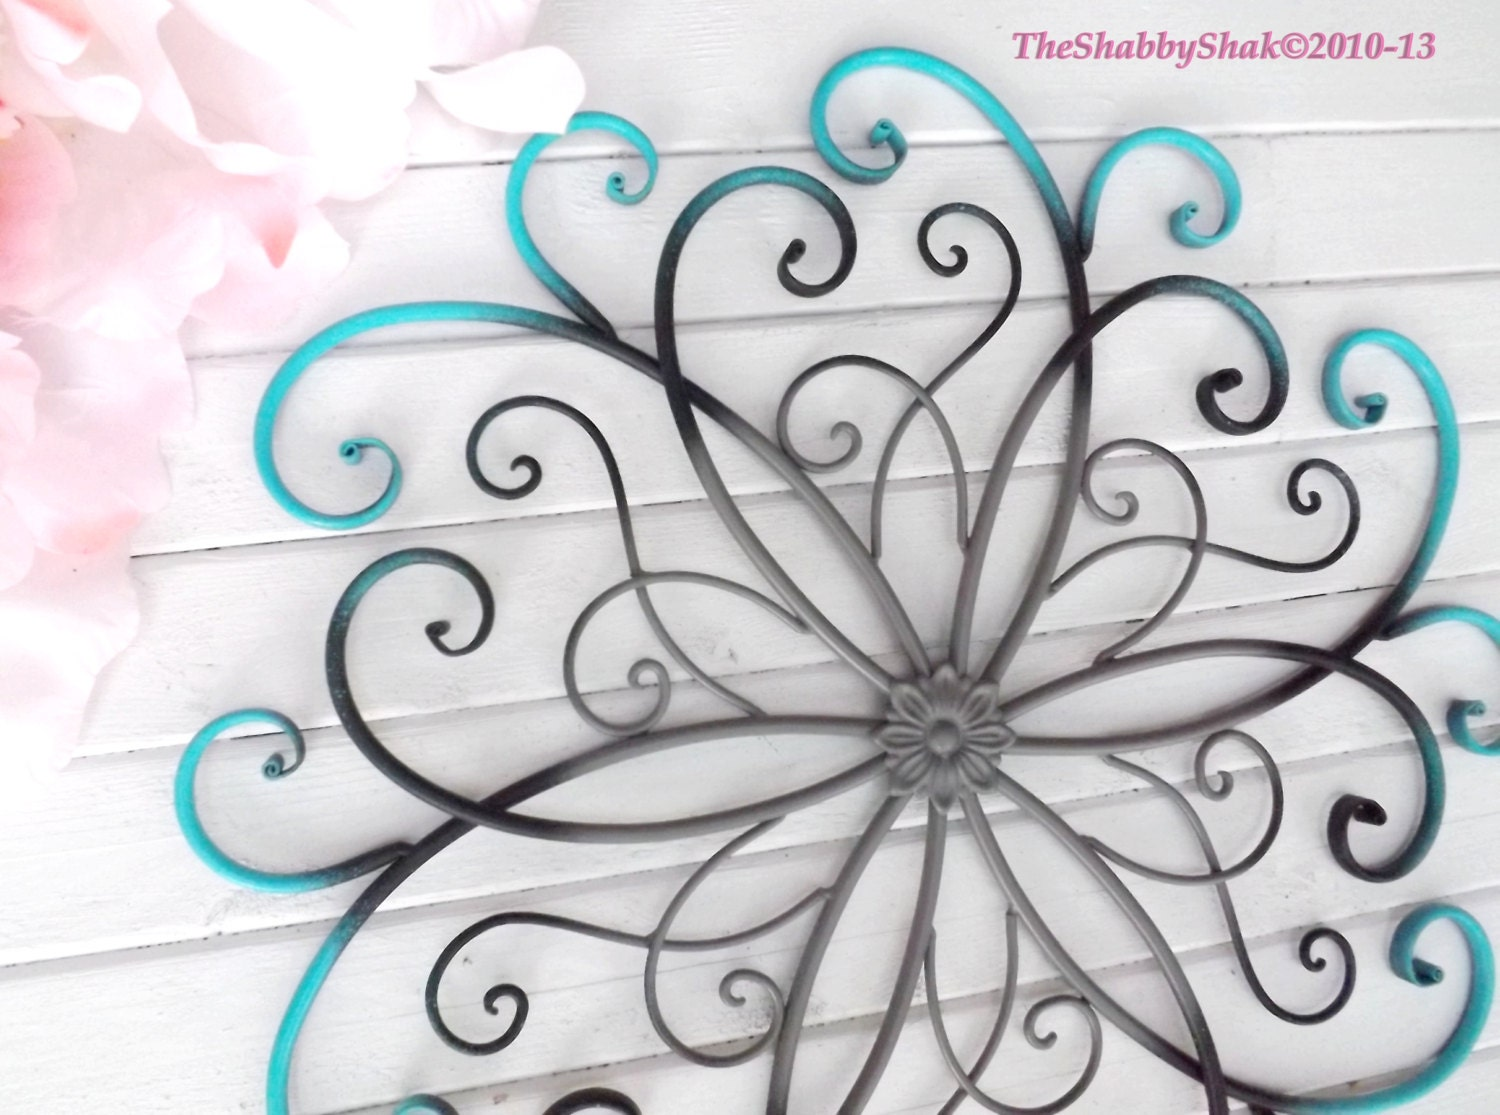 Large Metal Wall Art / Bedroom Wall Decor / by Theshabbyshak